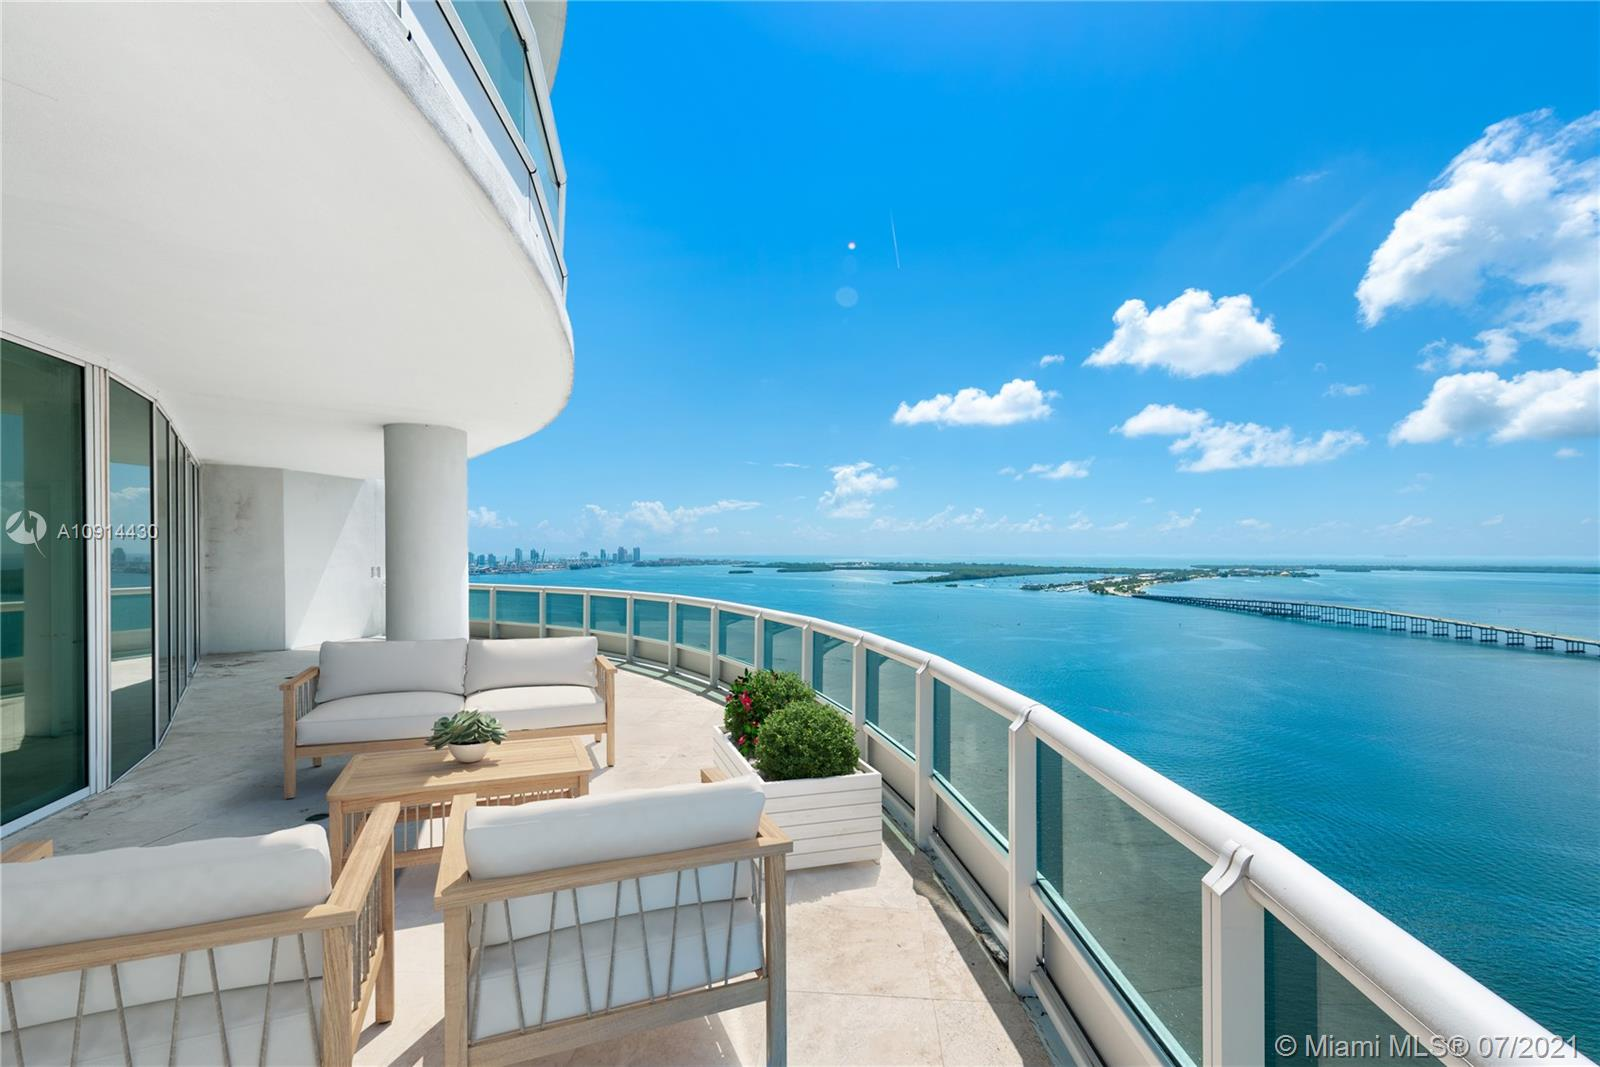 Situated atop the prestigious, full-service, white-glove Santa Maria, this spectacular 6,300 SqFt light-filled penthouse residence is truly a palace in the sky! The epitome of elegant bay front living on the desirable, quiet, tree-lined south side of Brickell. #PH4302 boasts 5 beds, 6.5 baths, private elevator / entry foyer & exceptional 270 degree city / bay views from an extraordinary 3,250 SqFt of wraparound terraces. 2 assigned covered parking + unlimited valet parking & storage. Fantastic apartment for entertaining w/ true flow-through floor plan. Total SQFT of apt including living & terraces is 9,550 SF. Amenities include Tennis, Clubhouse, Gym, Play Area, Swimming Pool, Gym/spa, 24hr Doorman Security. Located In The Heart Of Brickell, Close To Dining & Nightlife & Key Biscayne..